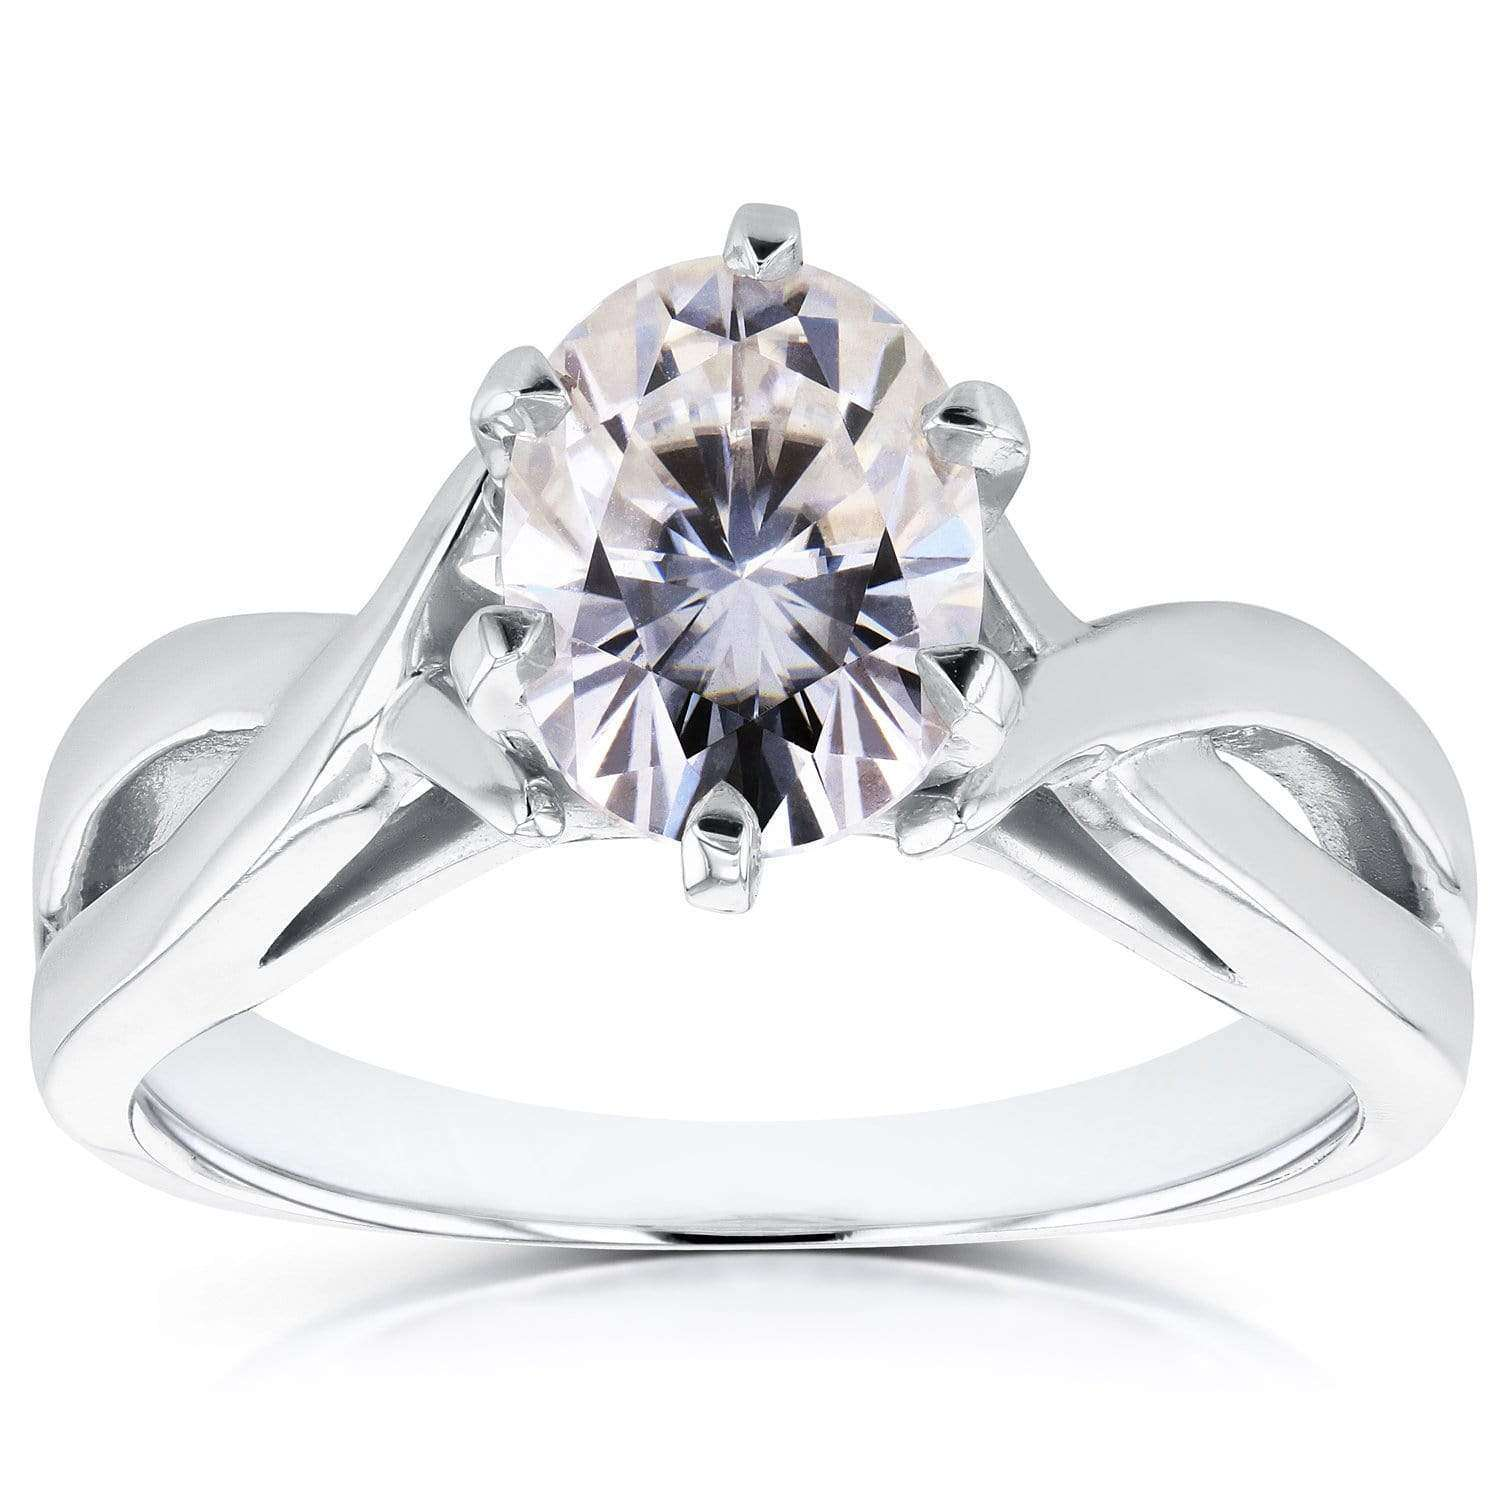 Promos Near-Colorless (F-G) Oval Moissanite Solitaire Crossover Ring 1 1/2 CTW in 14k White Gold - 8.5